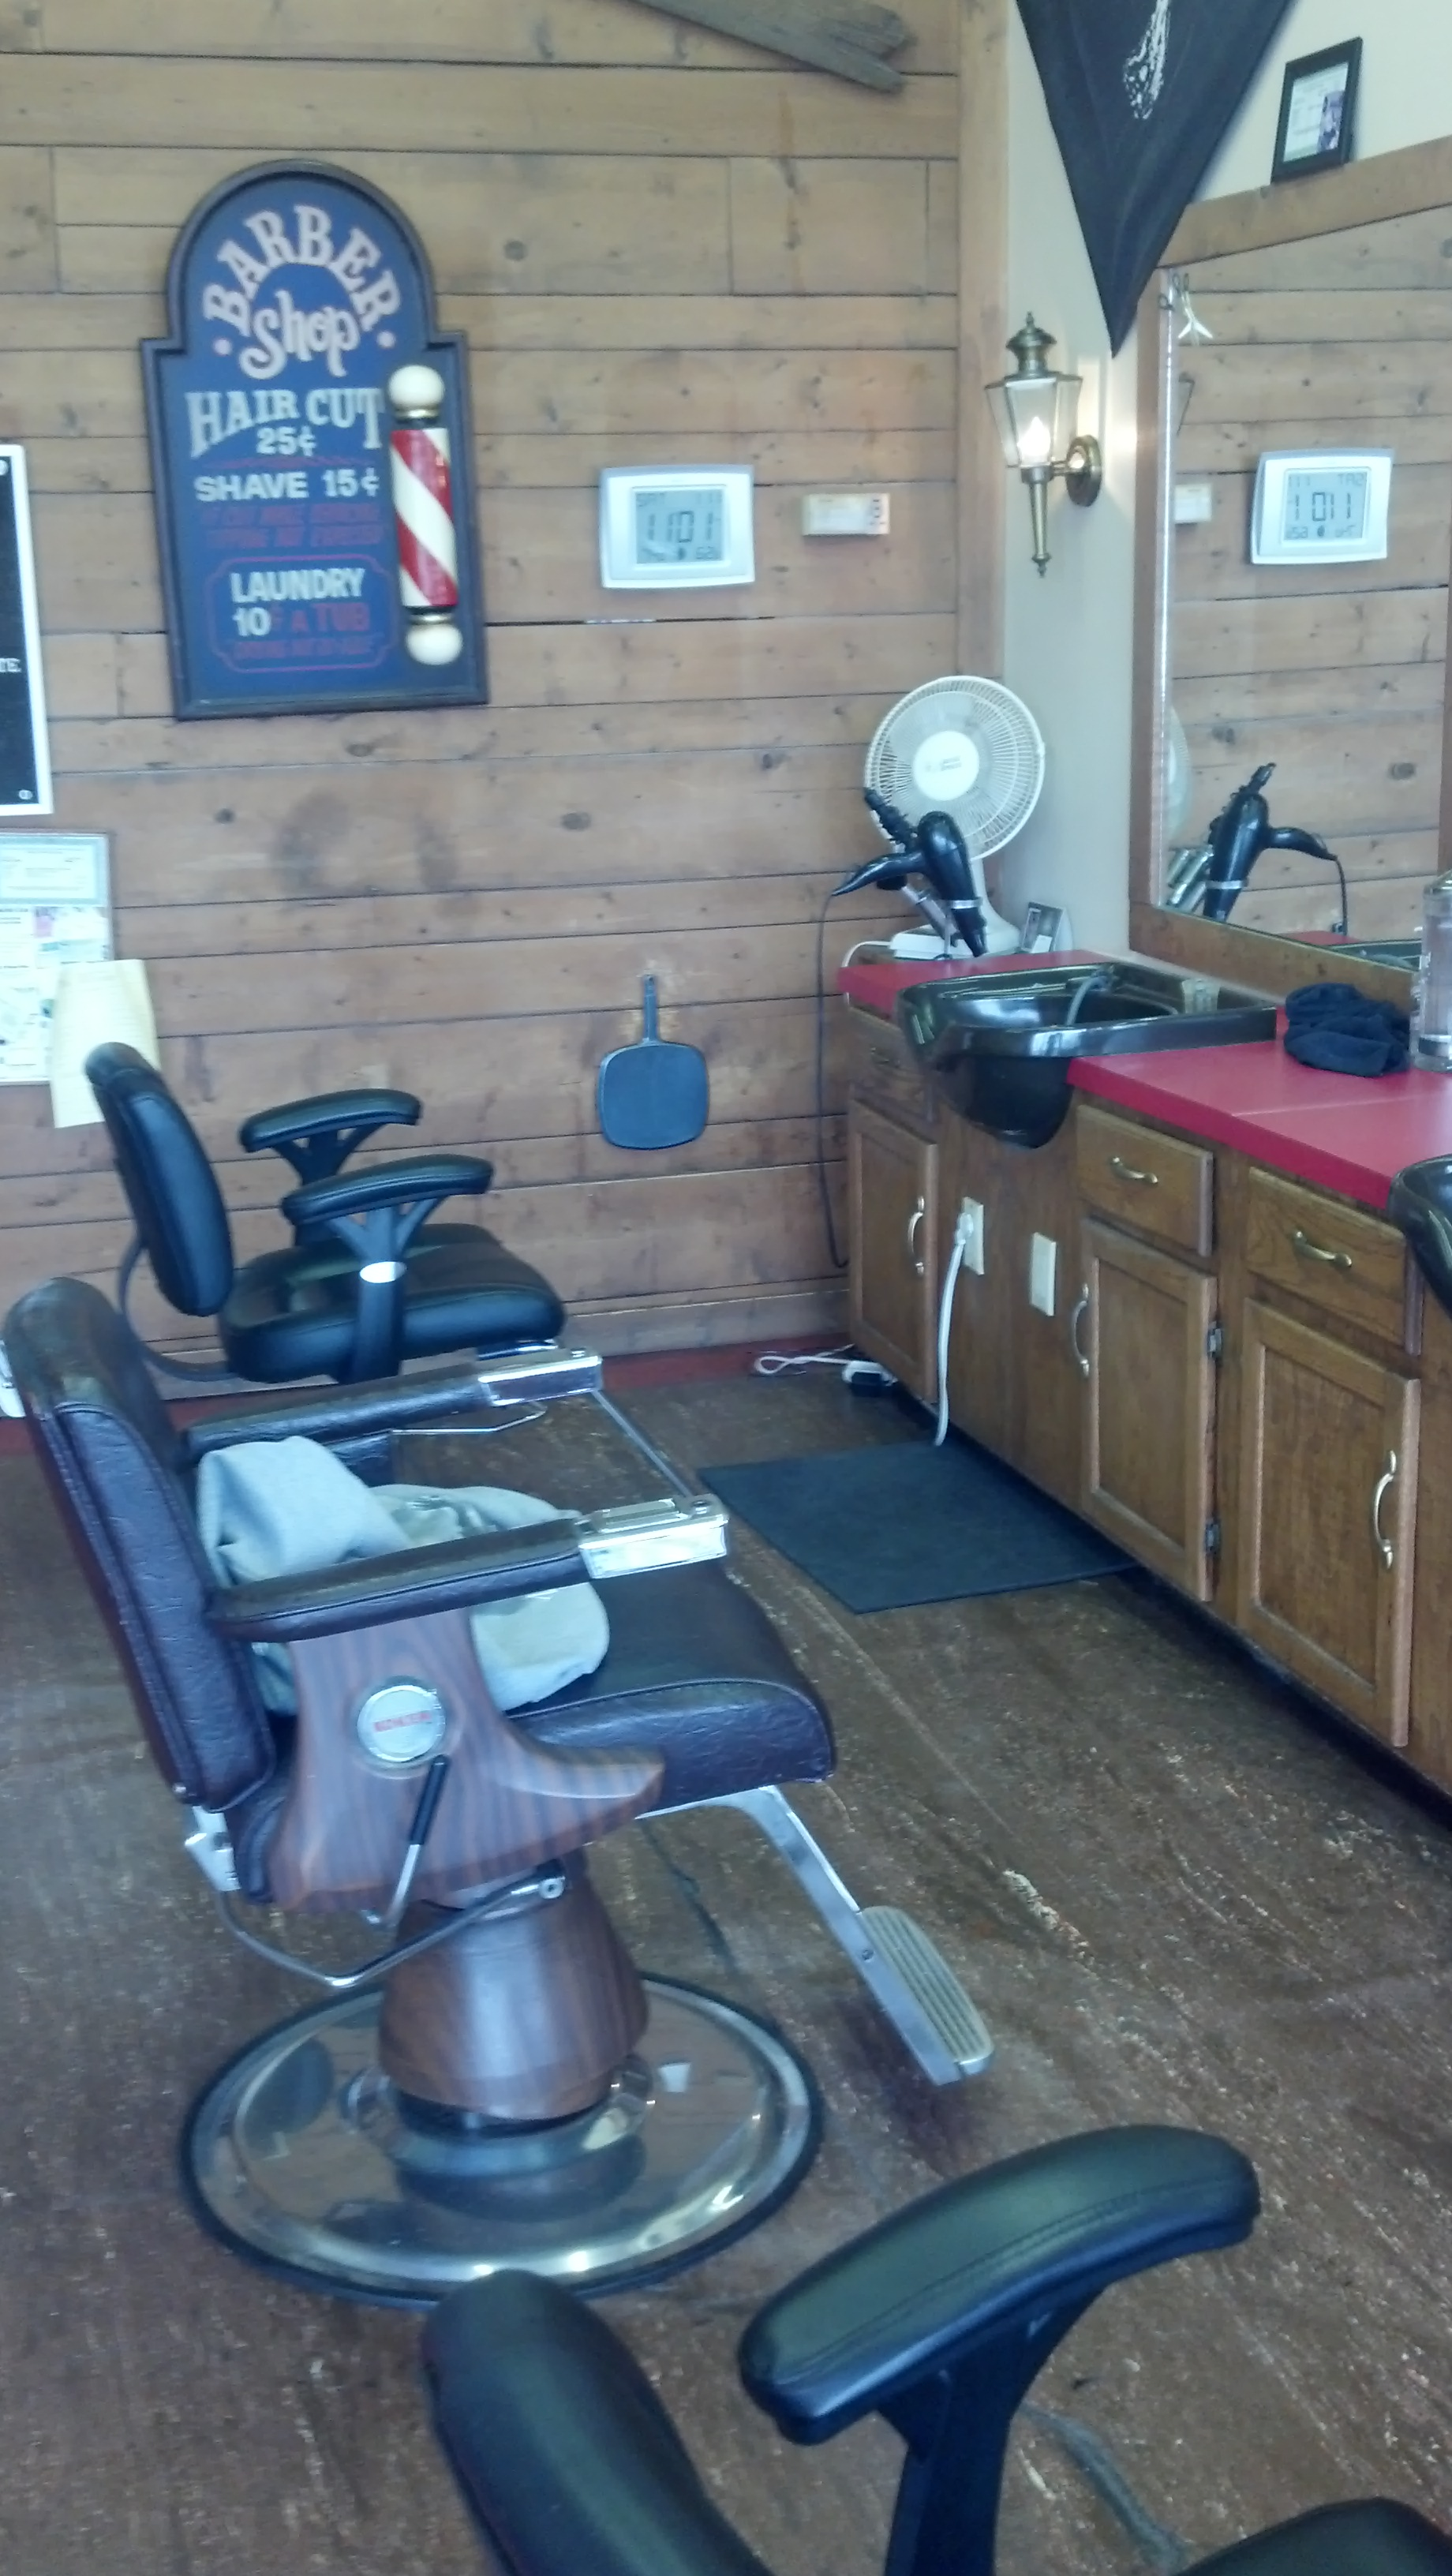 Businesses For Sale-Businesses For Sale-Barber Shop-Buy a Business